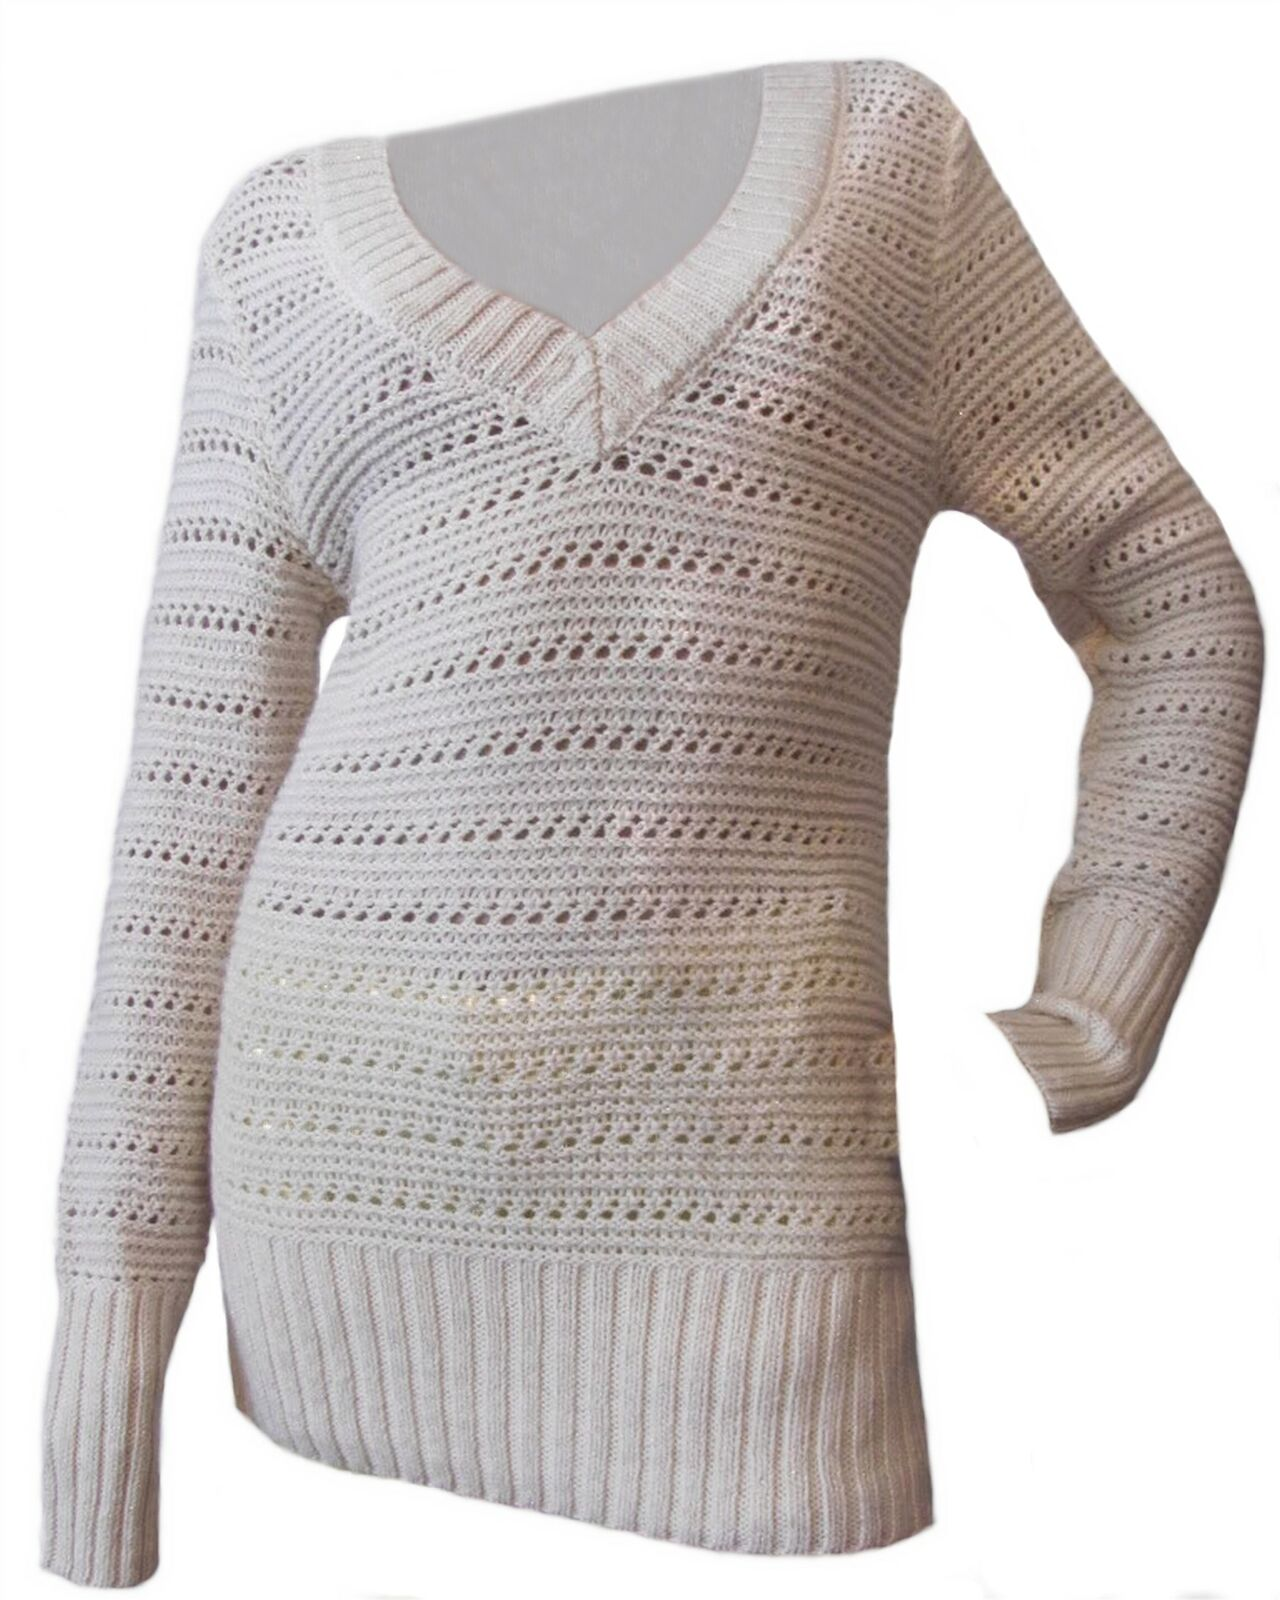 Lucky marque Naturelle Femme Casual Crochet Tricot Pull-Over v-neck sweater